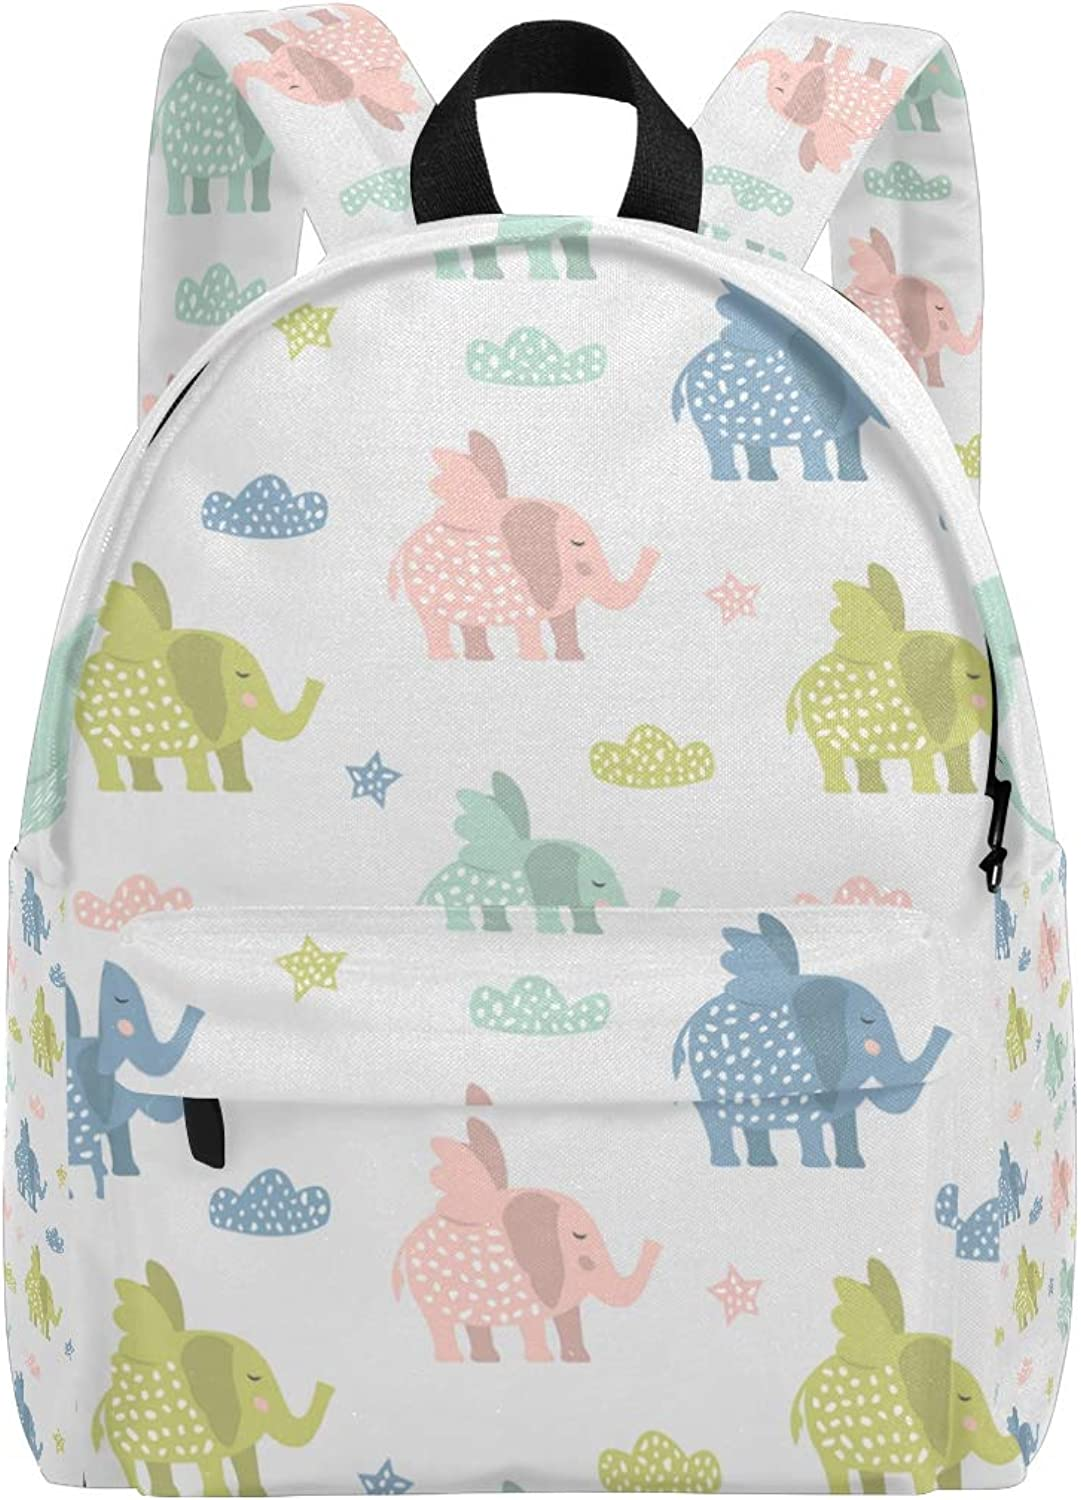 College Bookbag Cute Elephants with Dots colorful Print Schoolbag Unisex Backpack Hiking Daypacks Travel Sports Bags